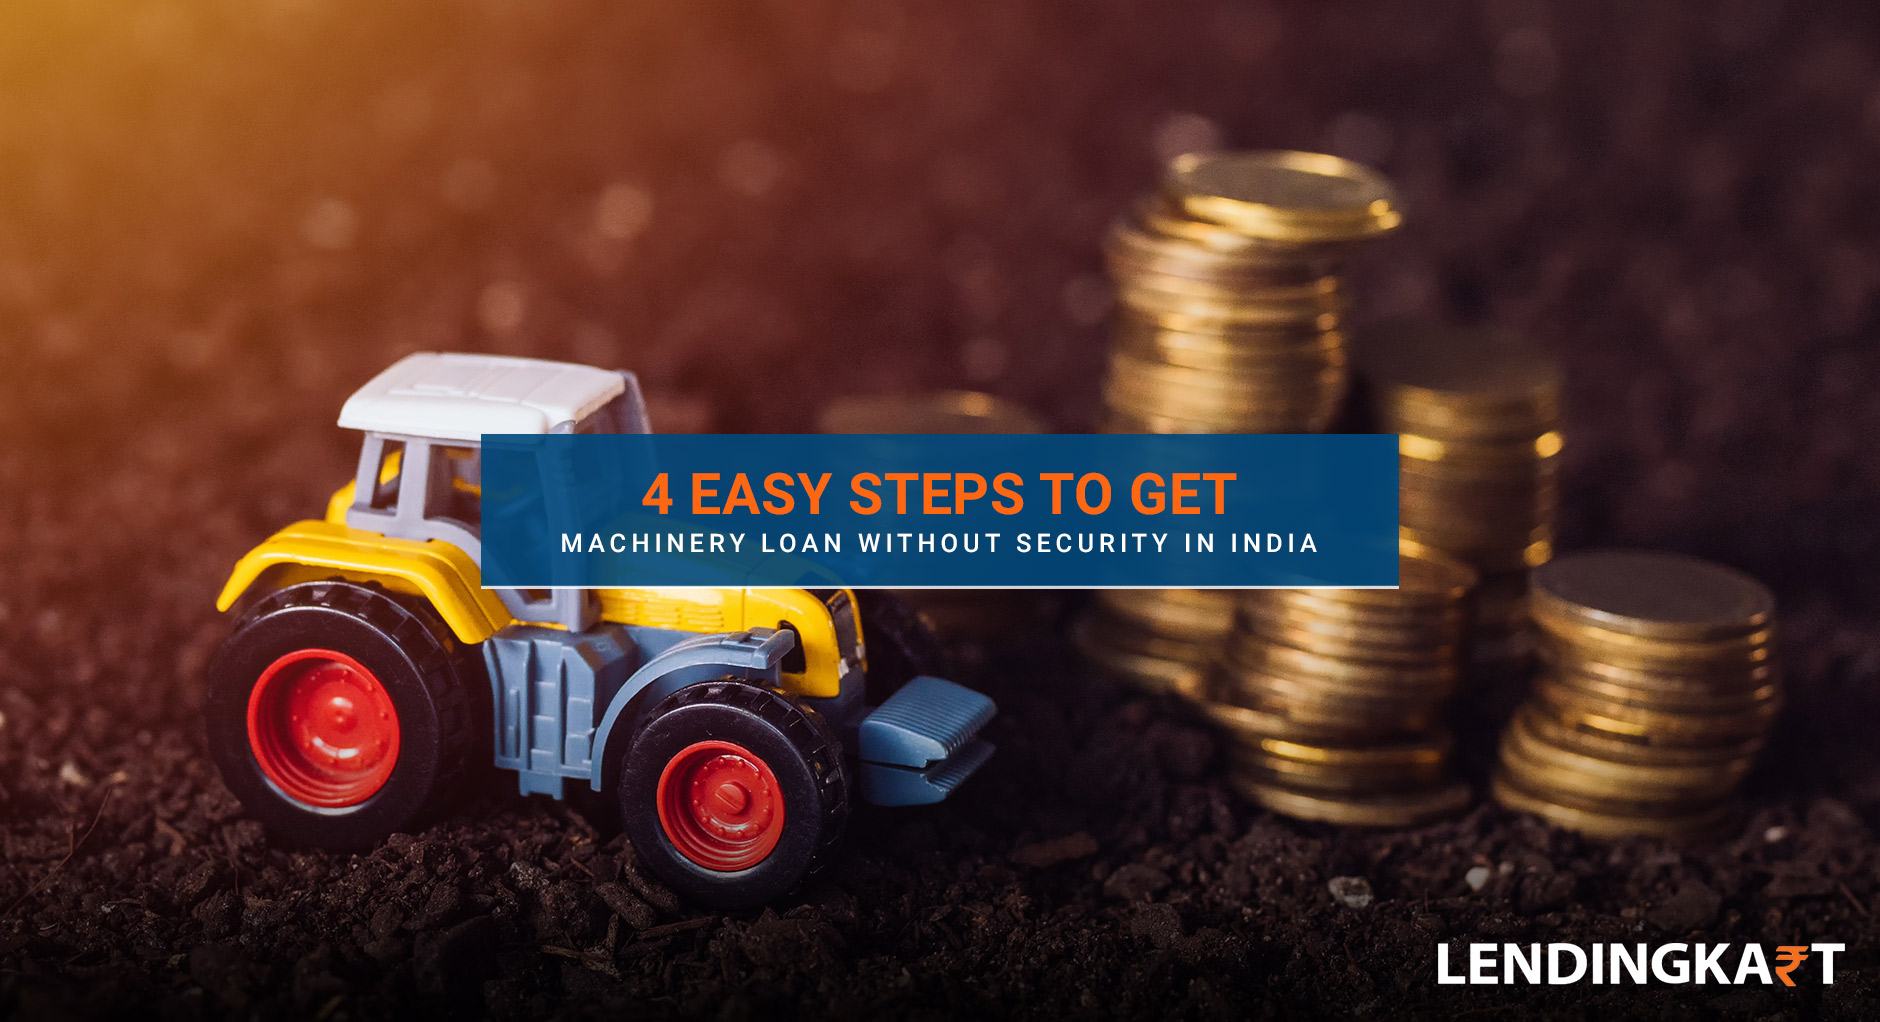 4 Easy Steps to Get Machinery Loan without Security in India